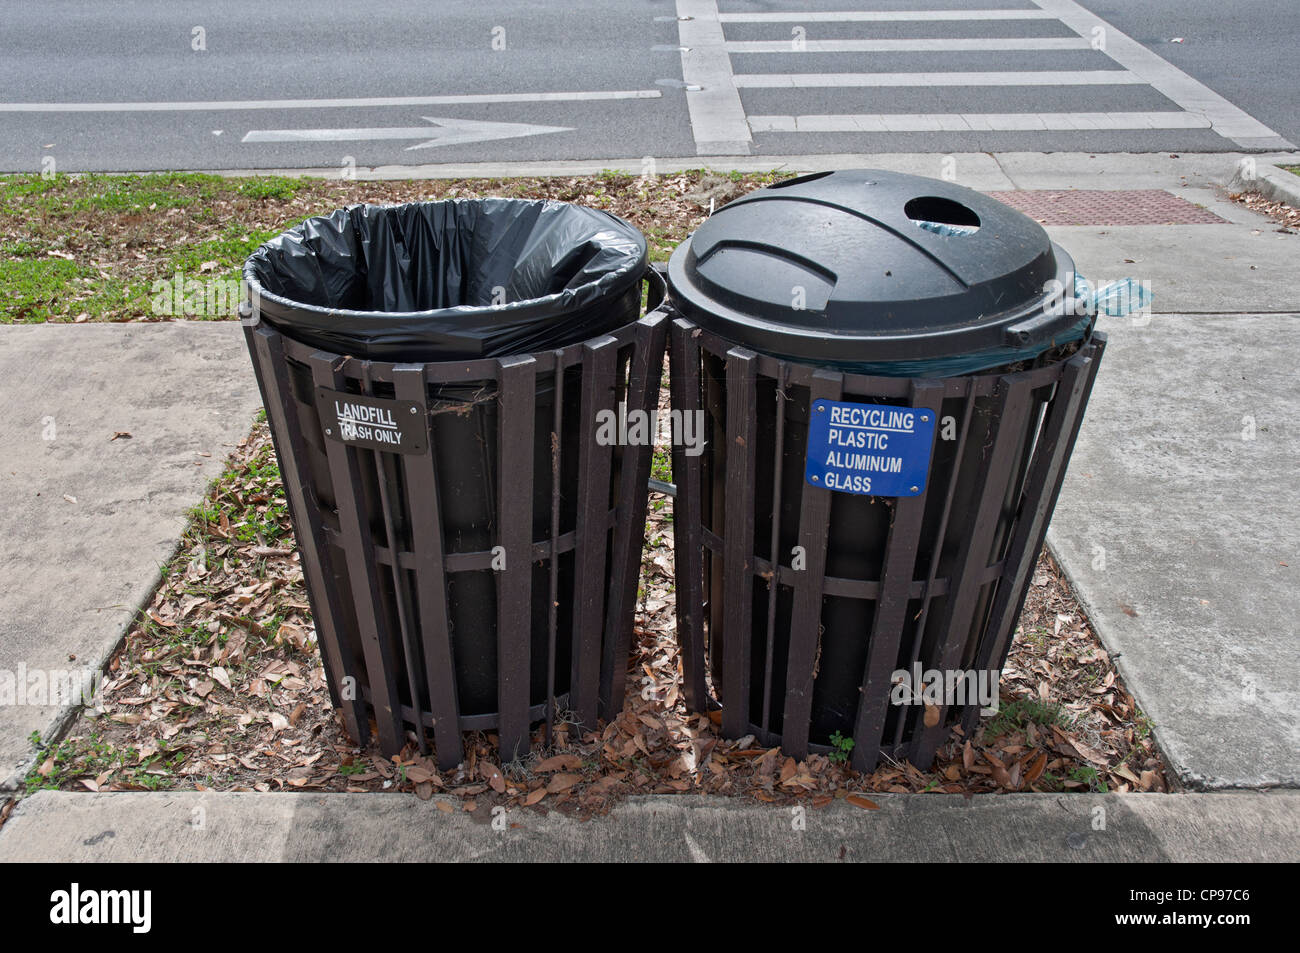 University of Florida campus Gainesville designated trash and landfill recycling bins near crosswalk. - Stock Image